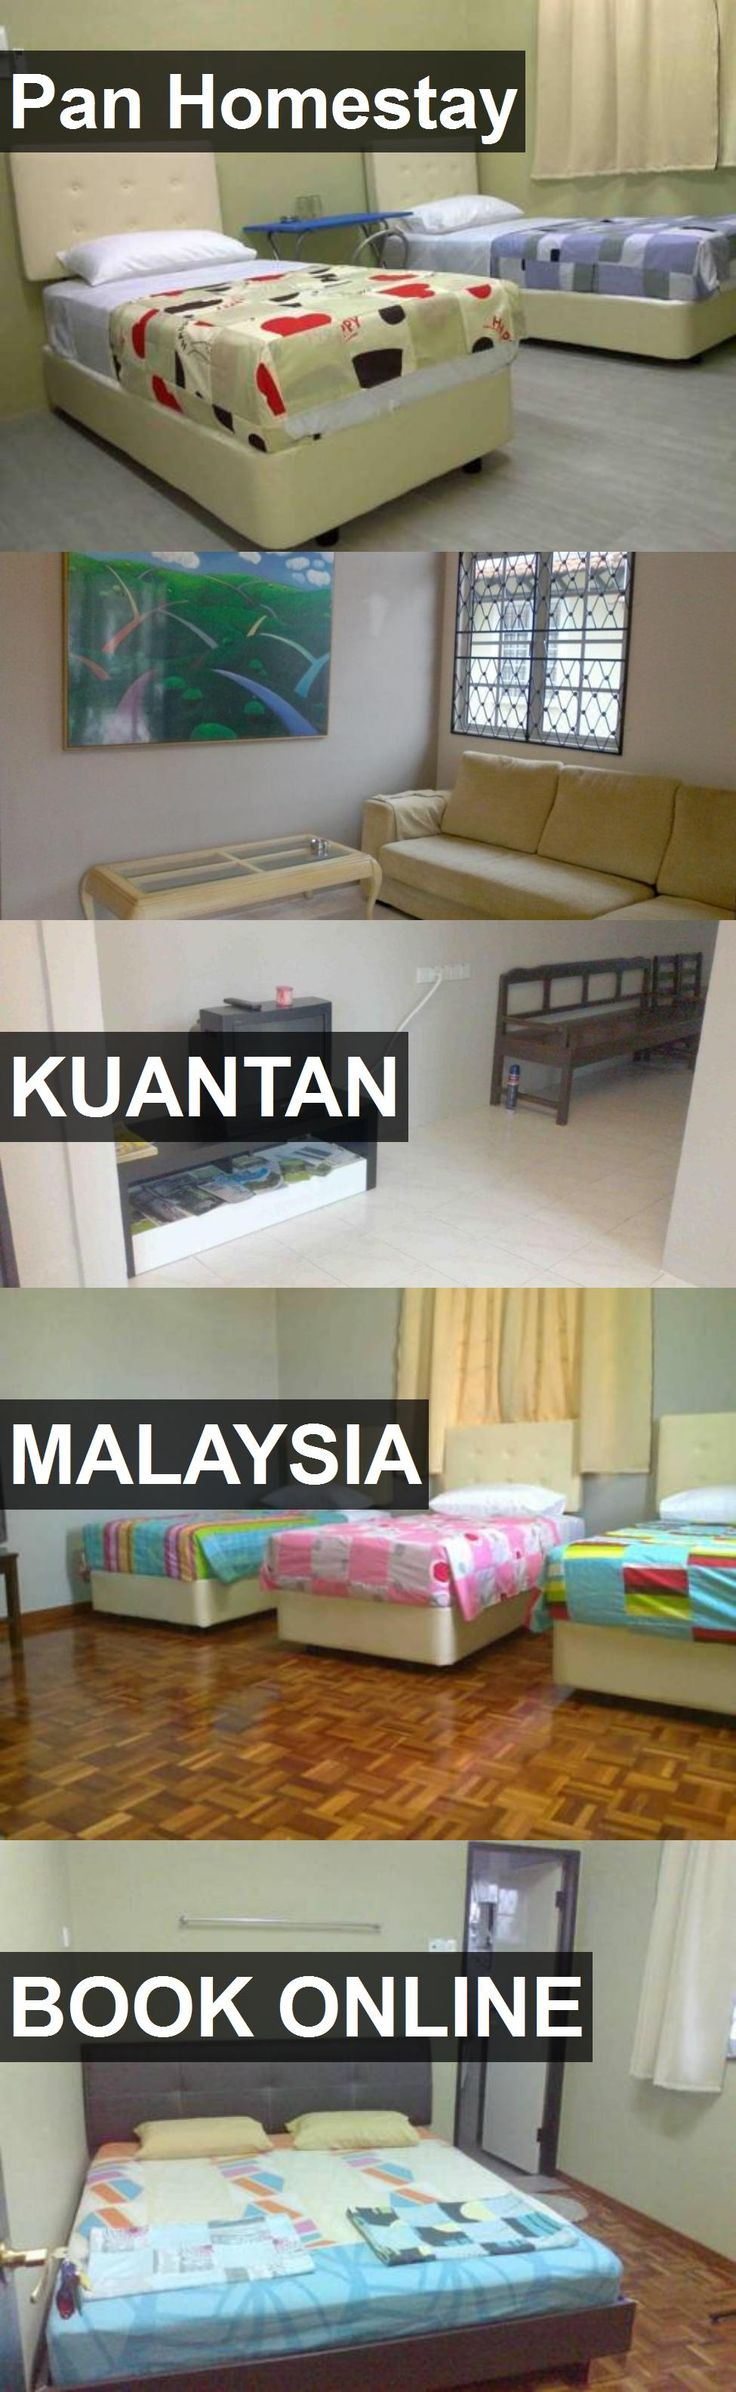 Hotel Pan Homestay in Kuantan, Malaysia. For more information, photos, reviews and best prices please follow the link. #Malaysia #Kuantan #travel #vacation #hotel